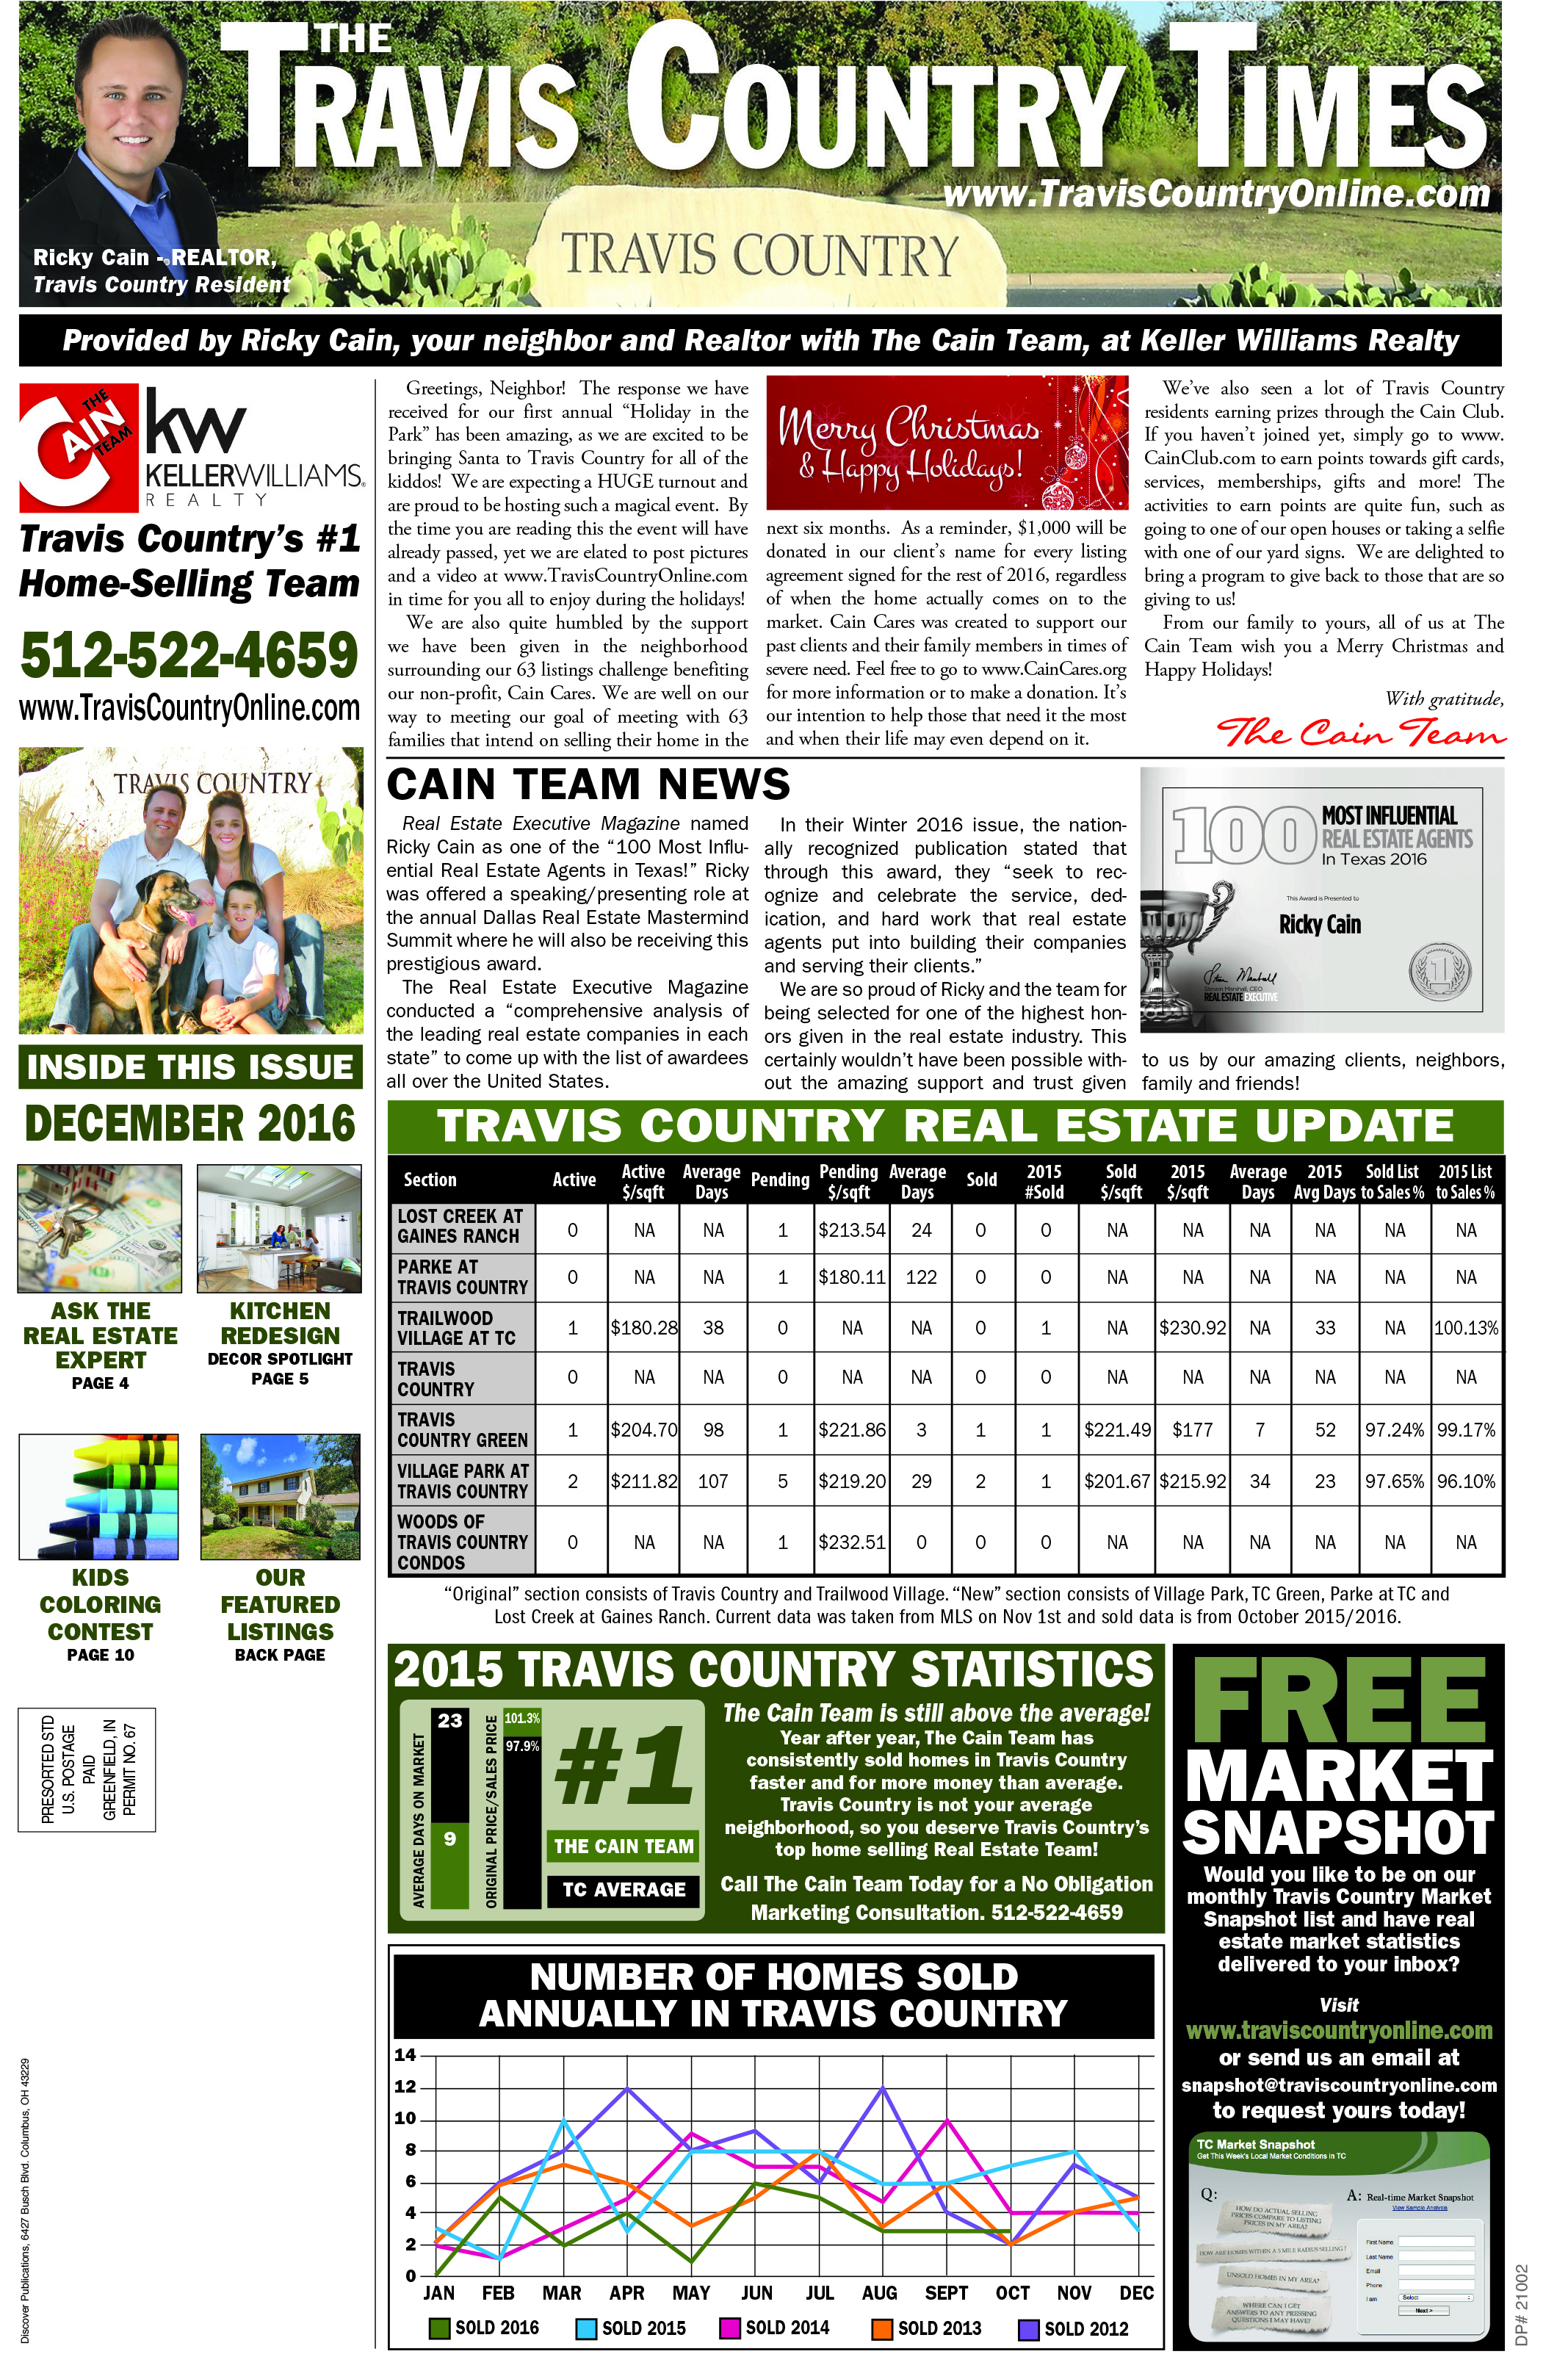 Travis Country Times December Issue